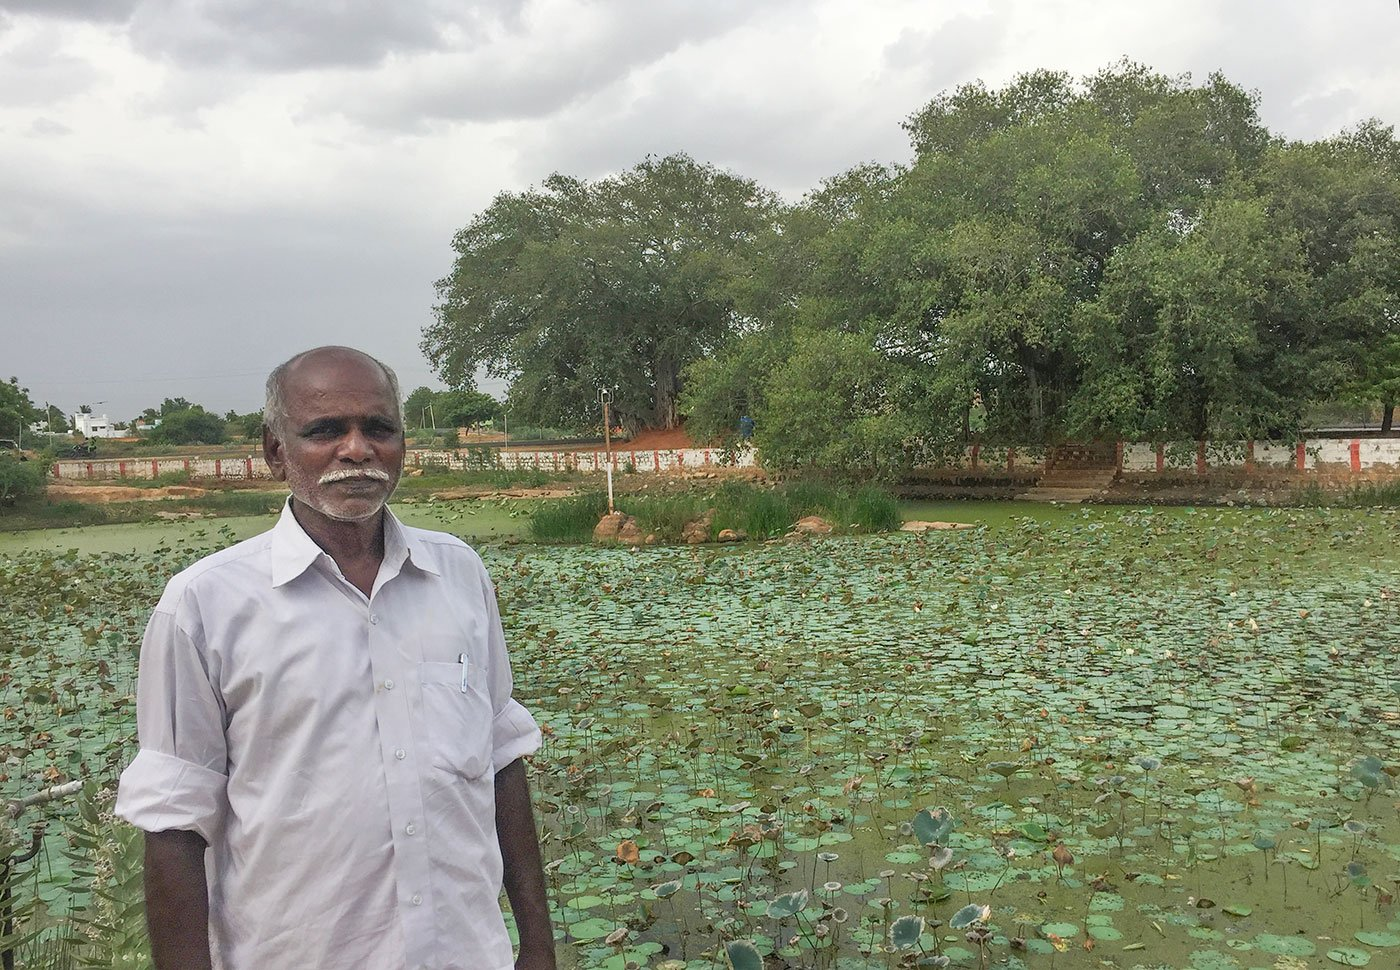 Pon Harichandran standing by a lake filled with lotuses